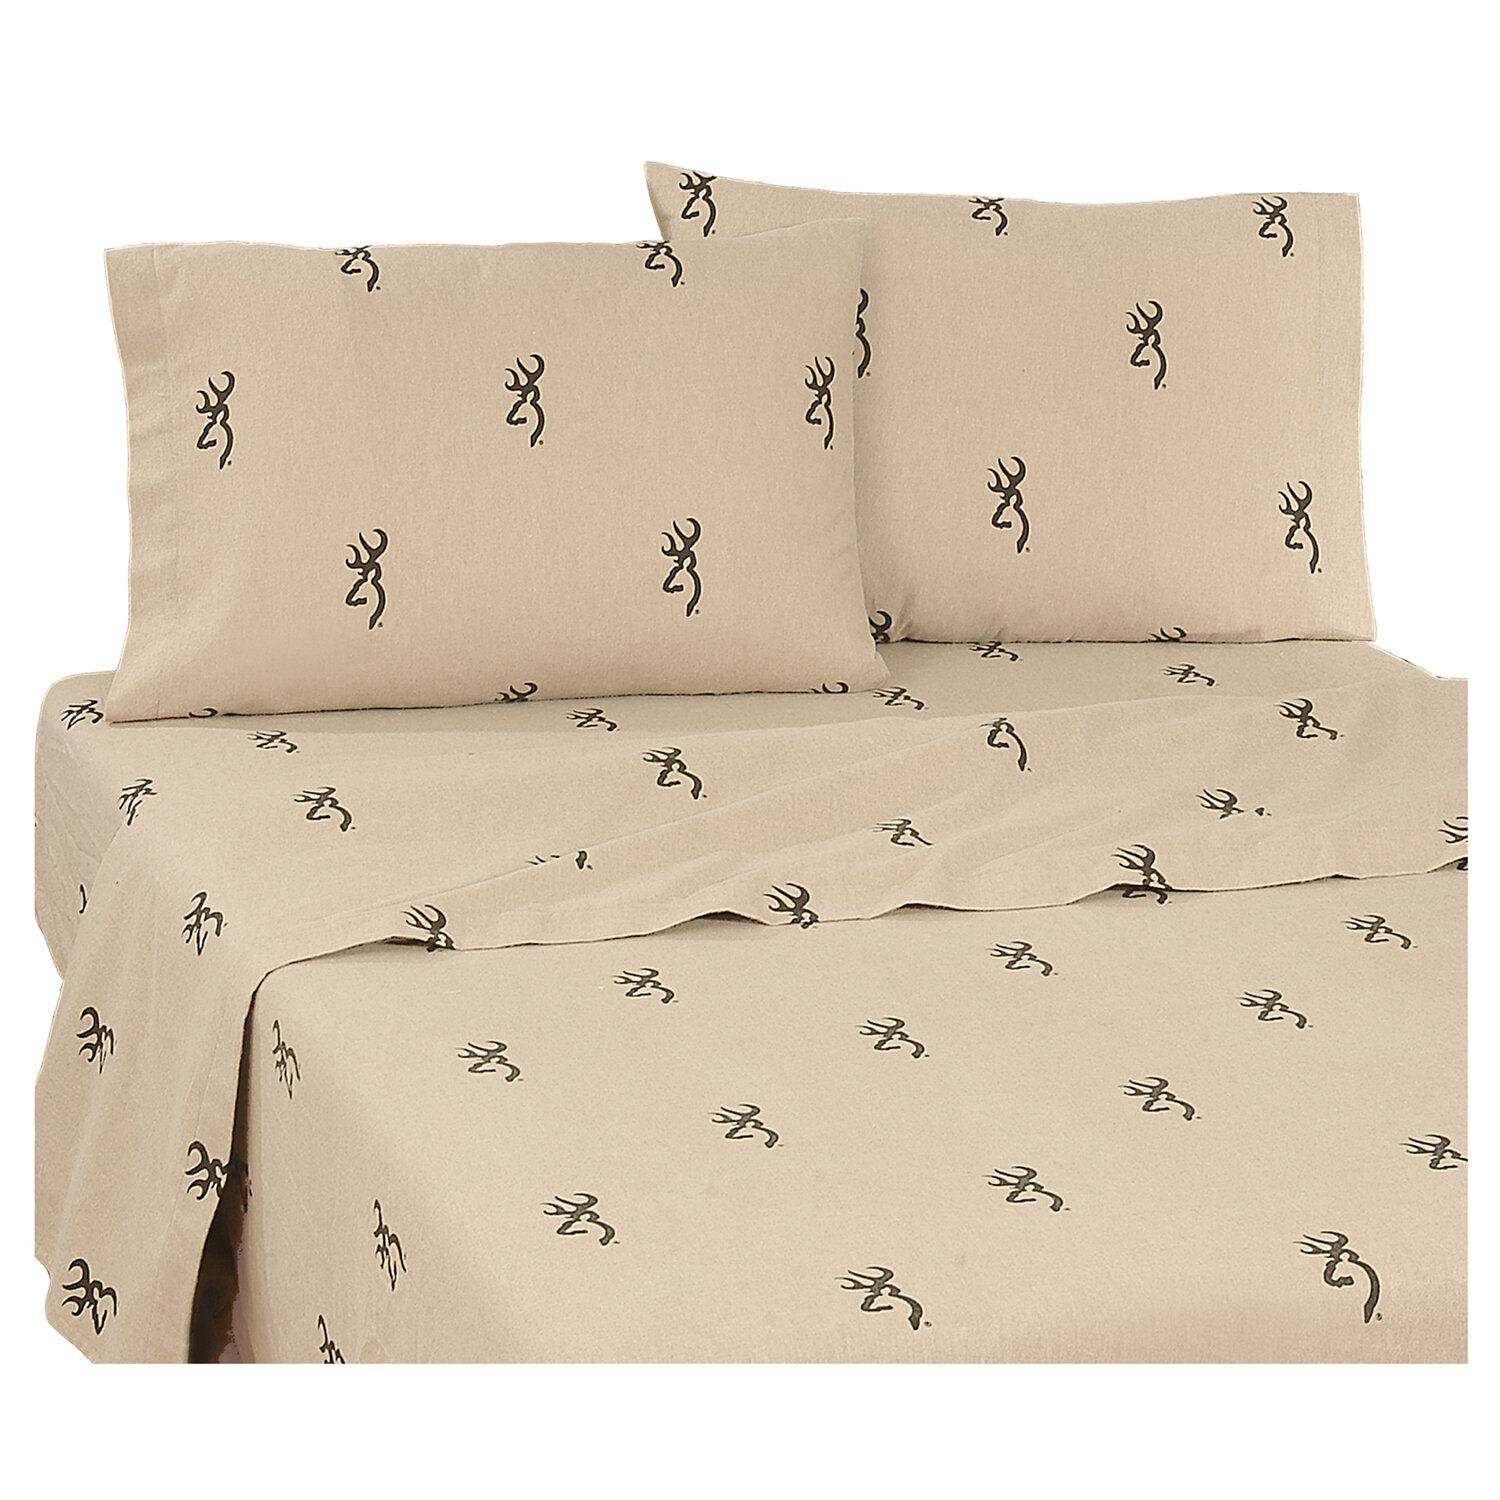 Browning Country 180 Thread Count Percale Sheet Set | Wayfair